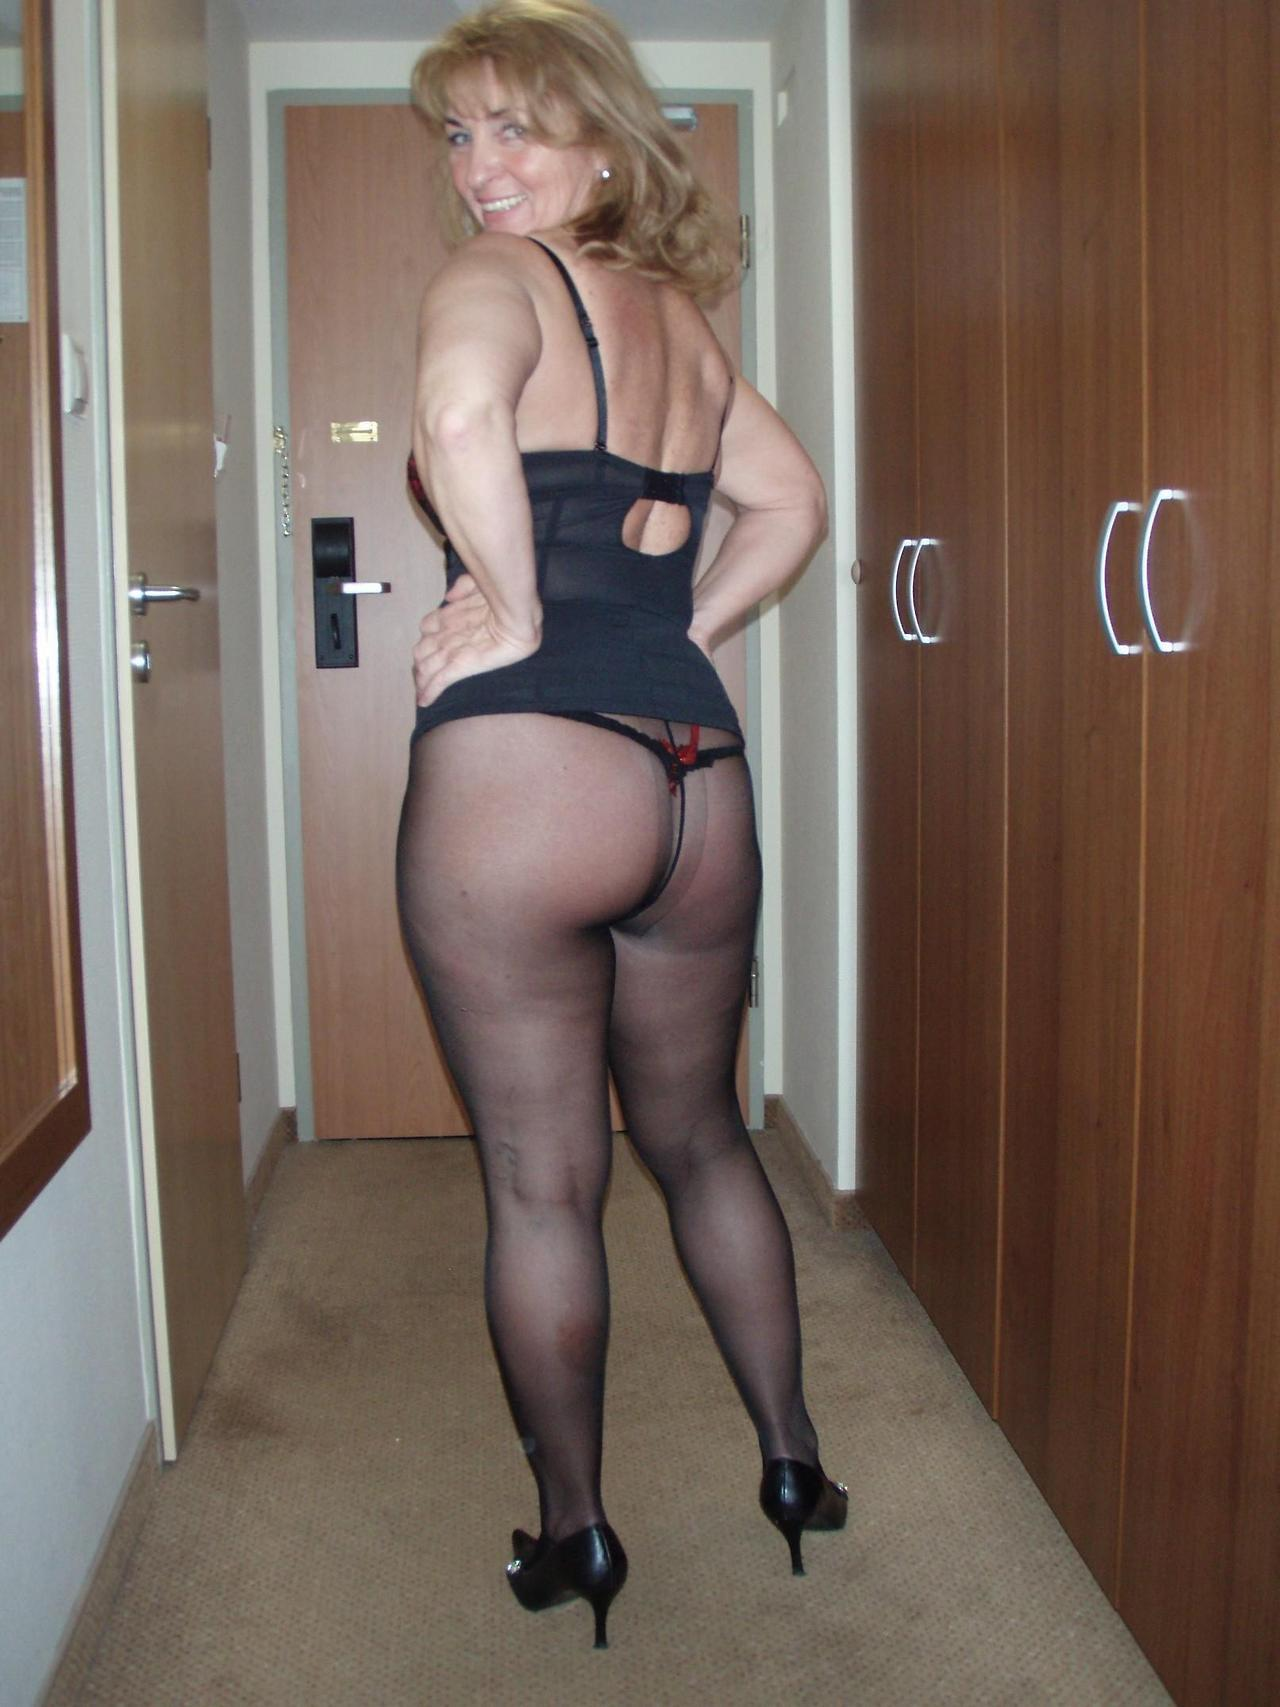 Older babe stripping down to nylons